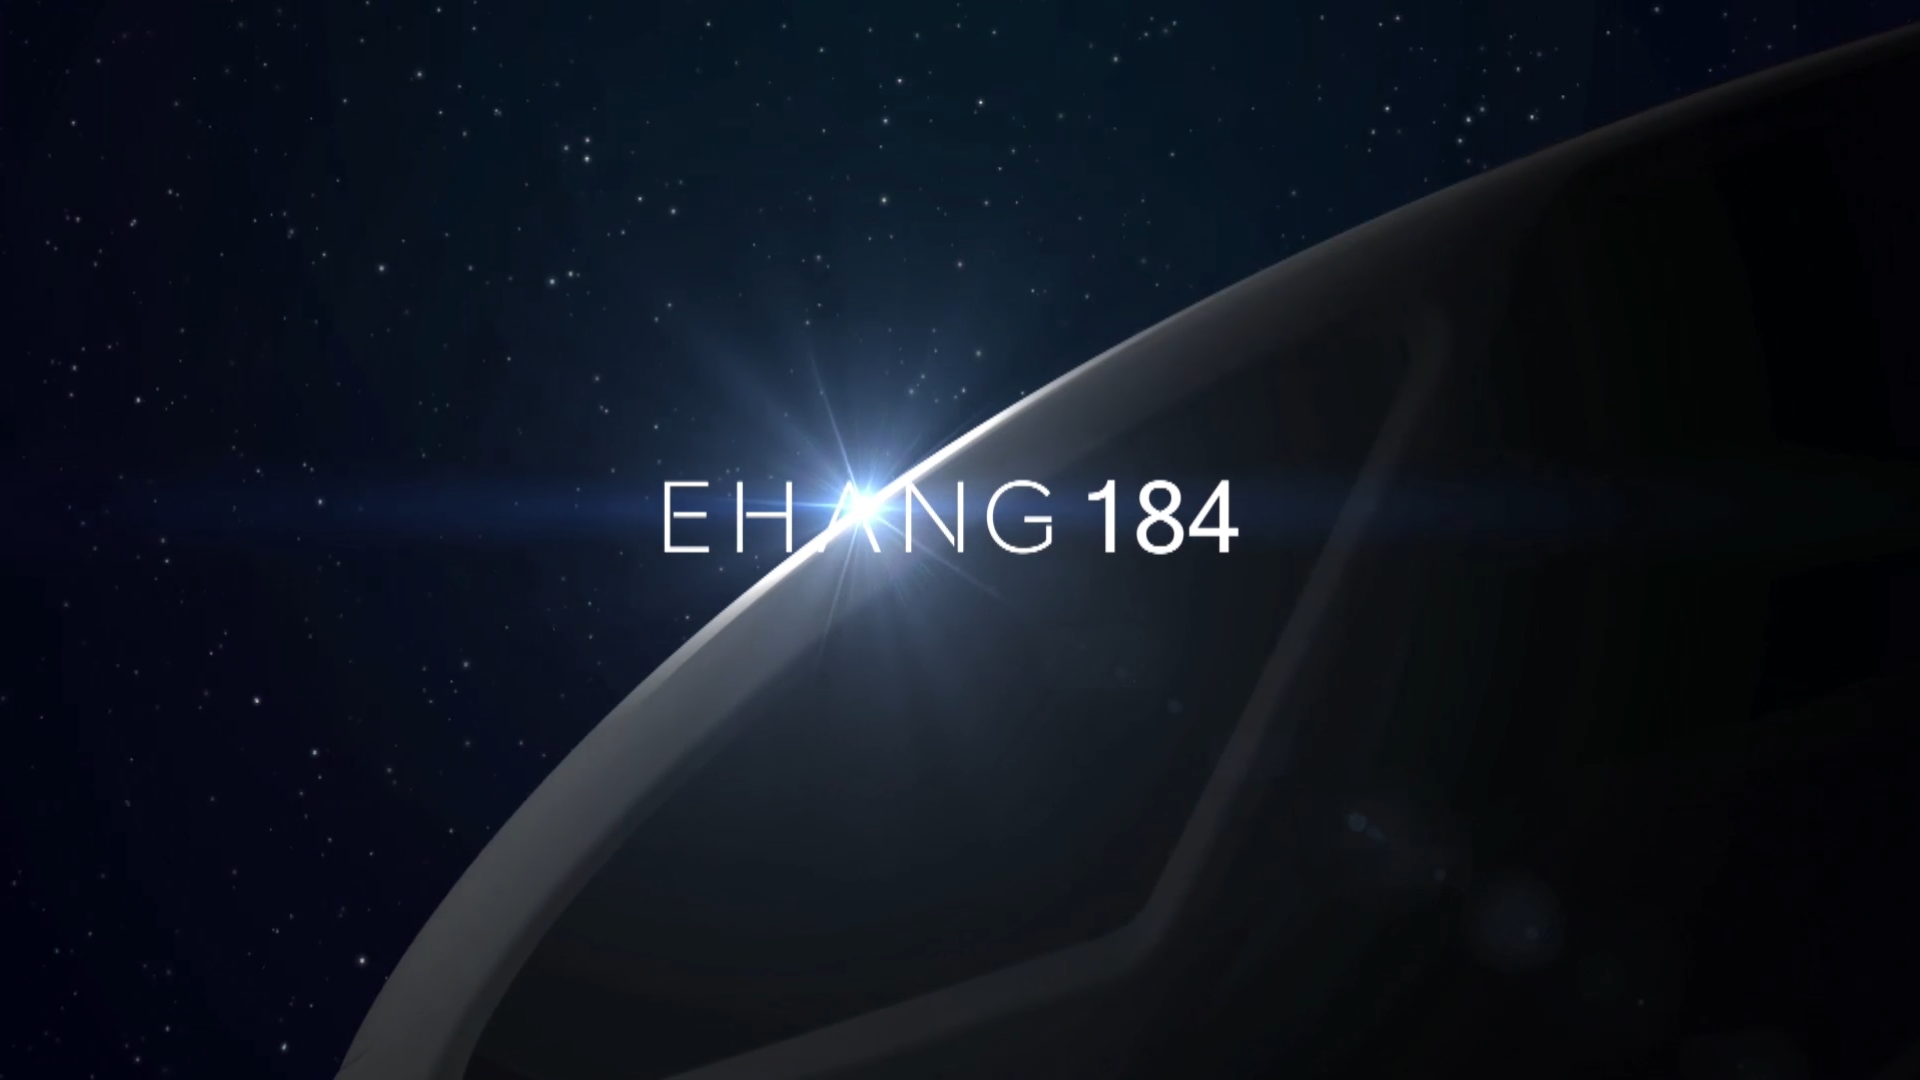 EHang 184 Promotional Video